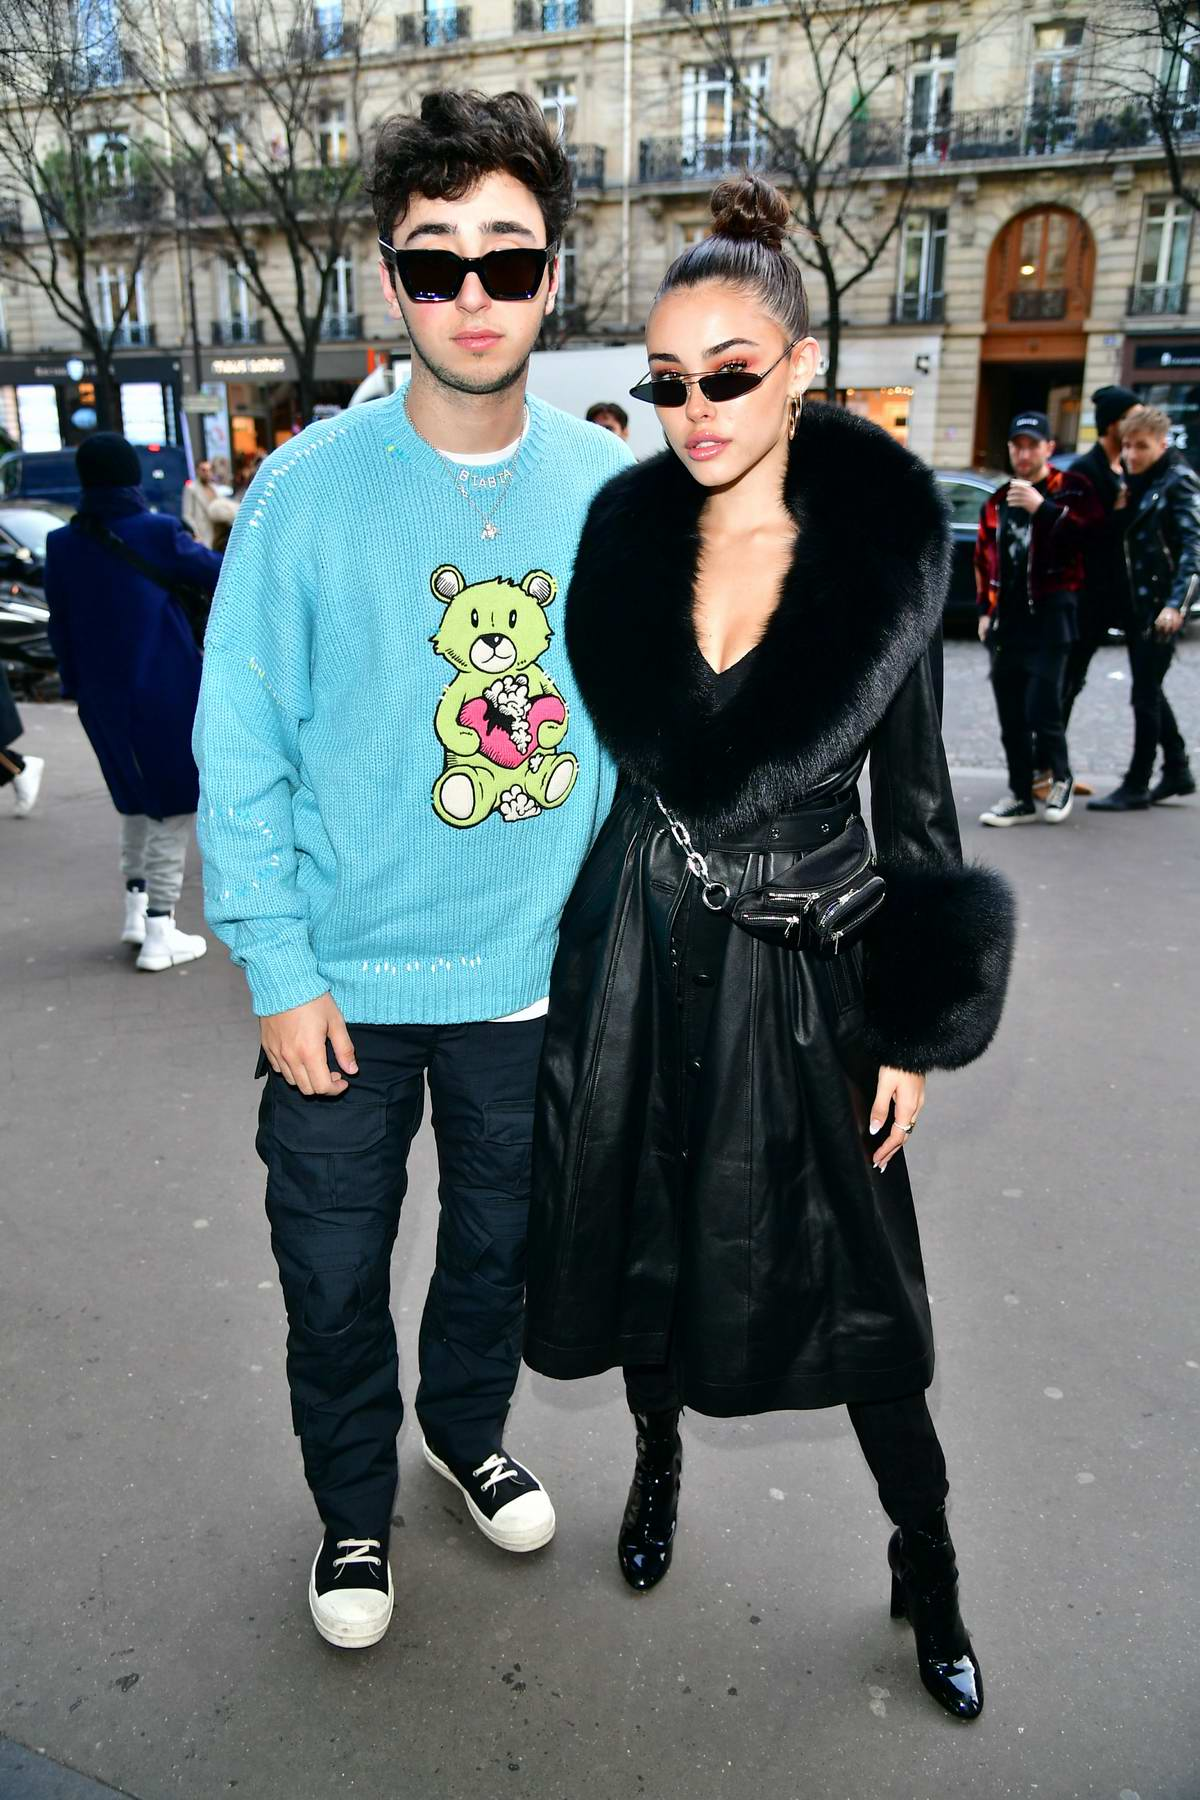 Madison Beer and Zack Bia attends the Amiri Paris Menswear Fall/Winter 2019/20 Show during Paris Fashion Week in Paris, France